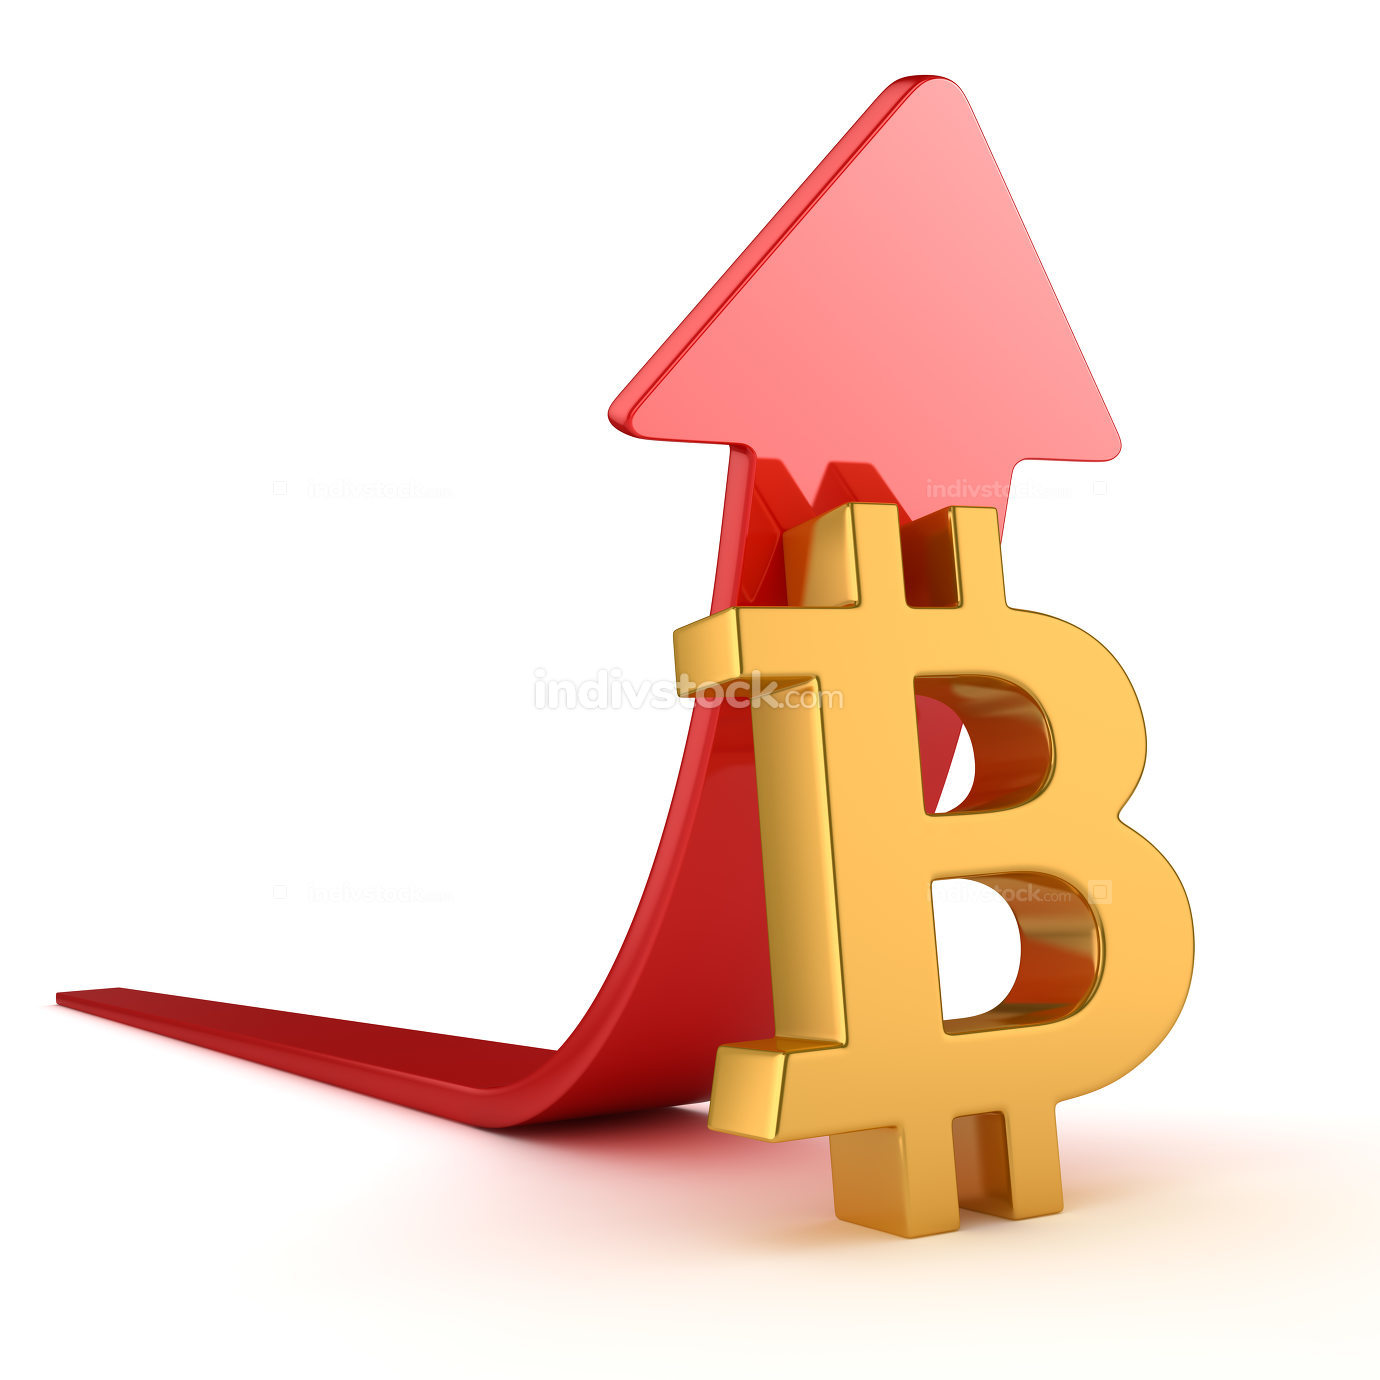 Bitcoin Symbol and Red Arrow